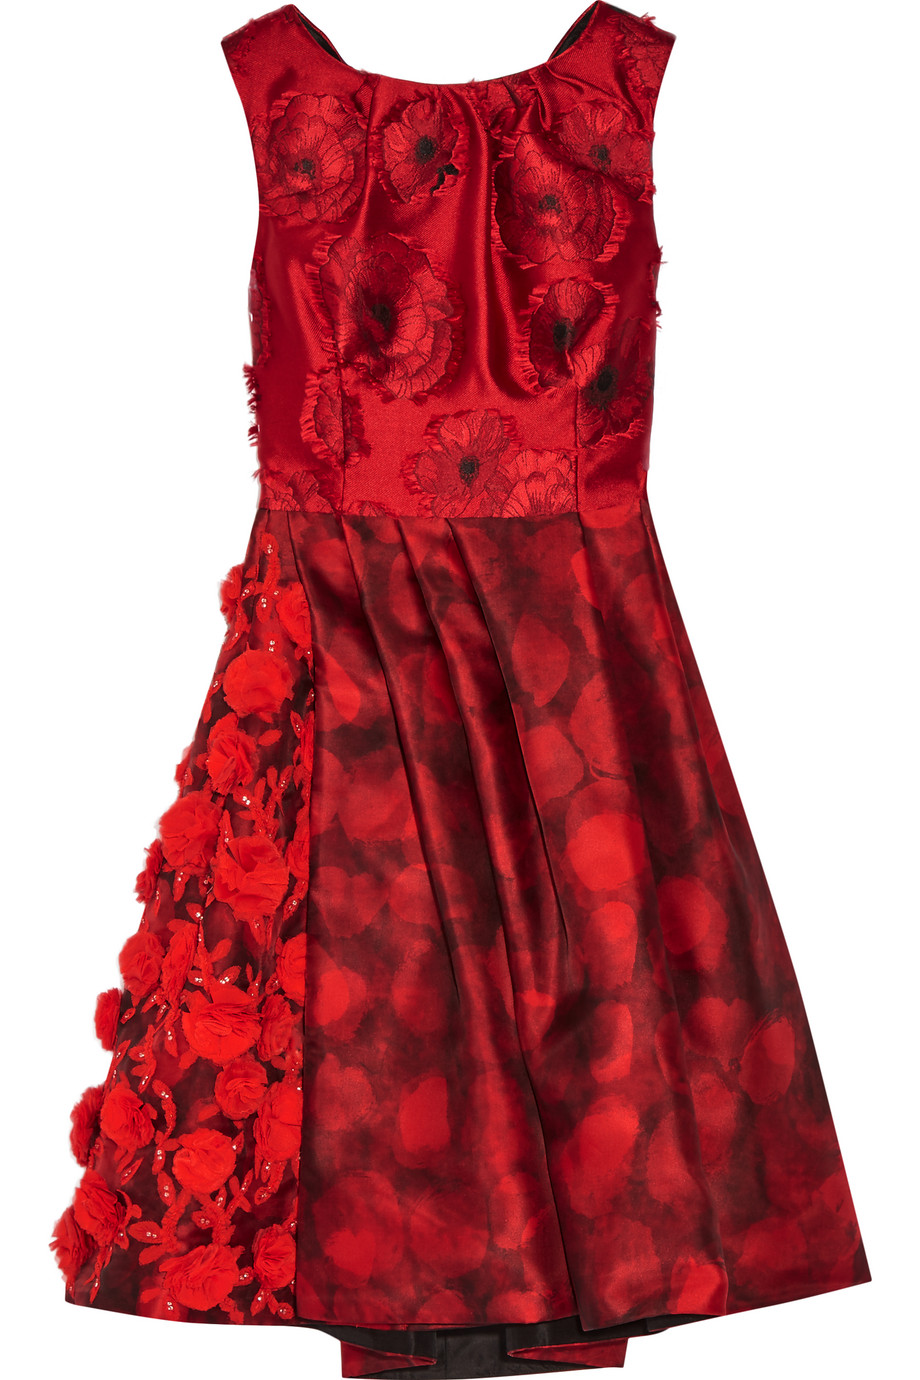 Oscar De La Renta Embellished Fil Coupé and Printed Silk-Gazar Dress, Claret/Red, Women's - Printed, Size: 10